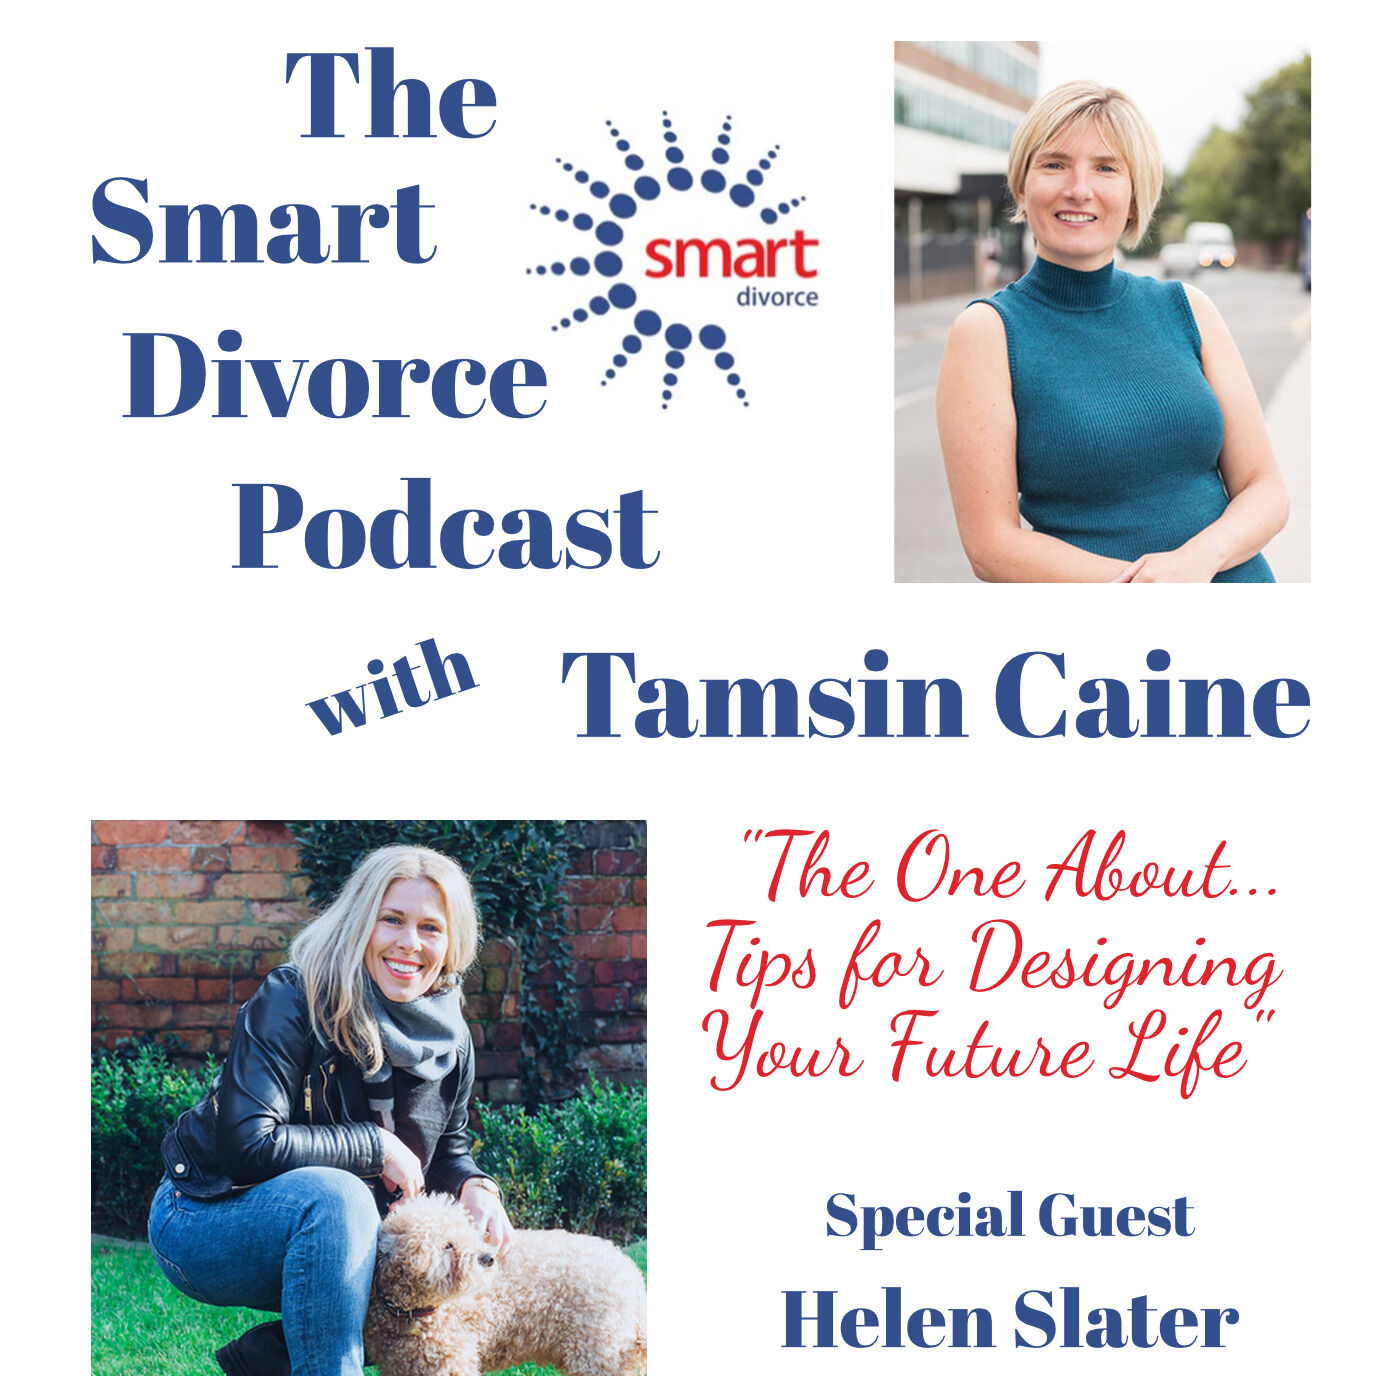 The Smart Divorce Podcast - The One About...Tips for Designing your Future Life